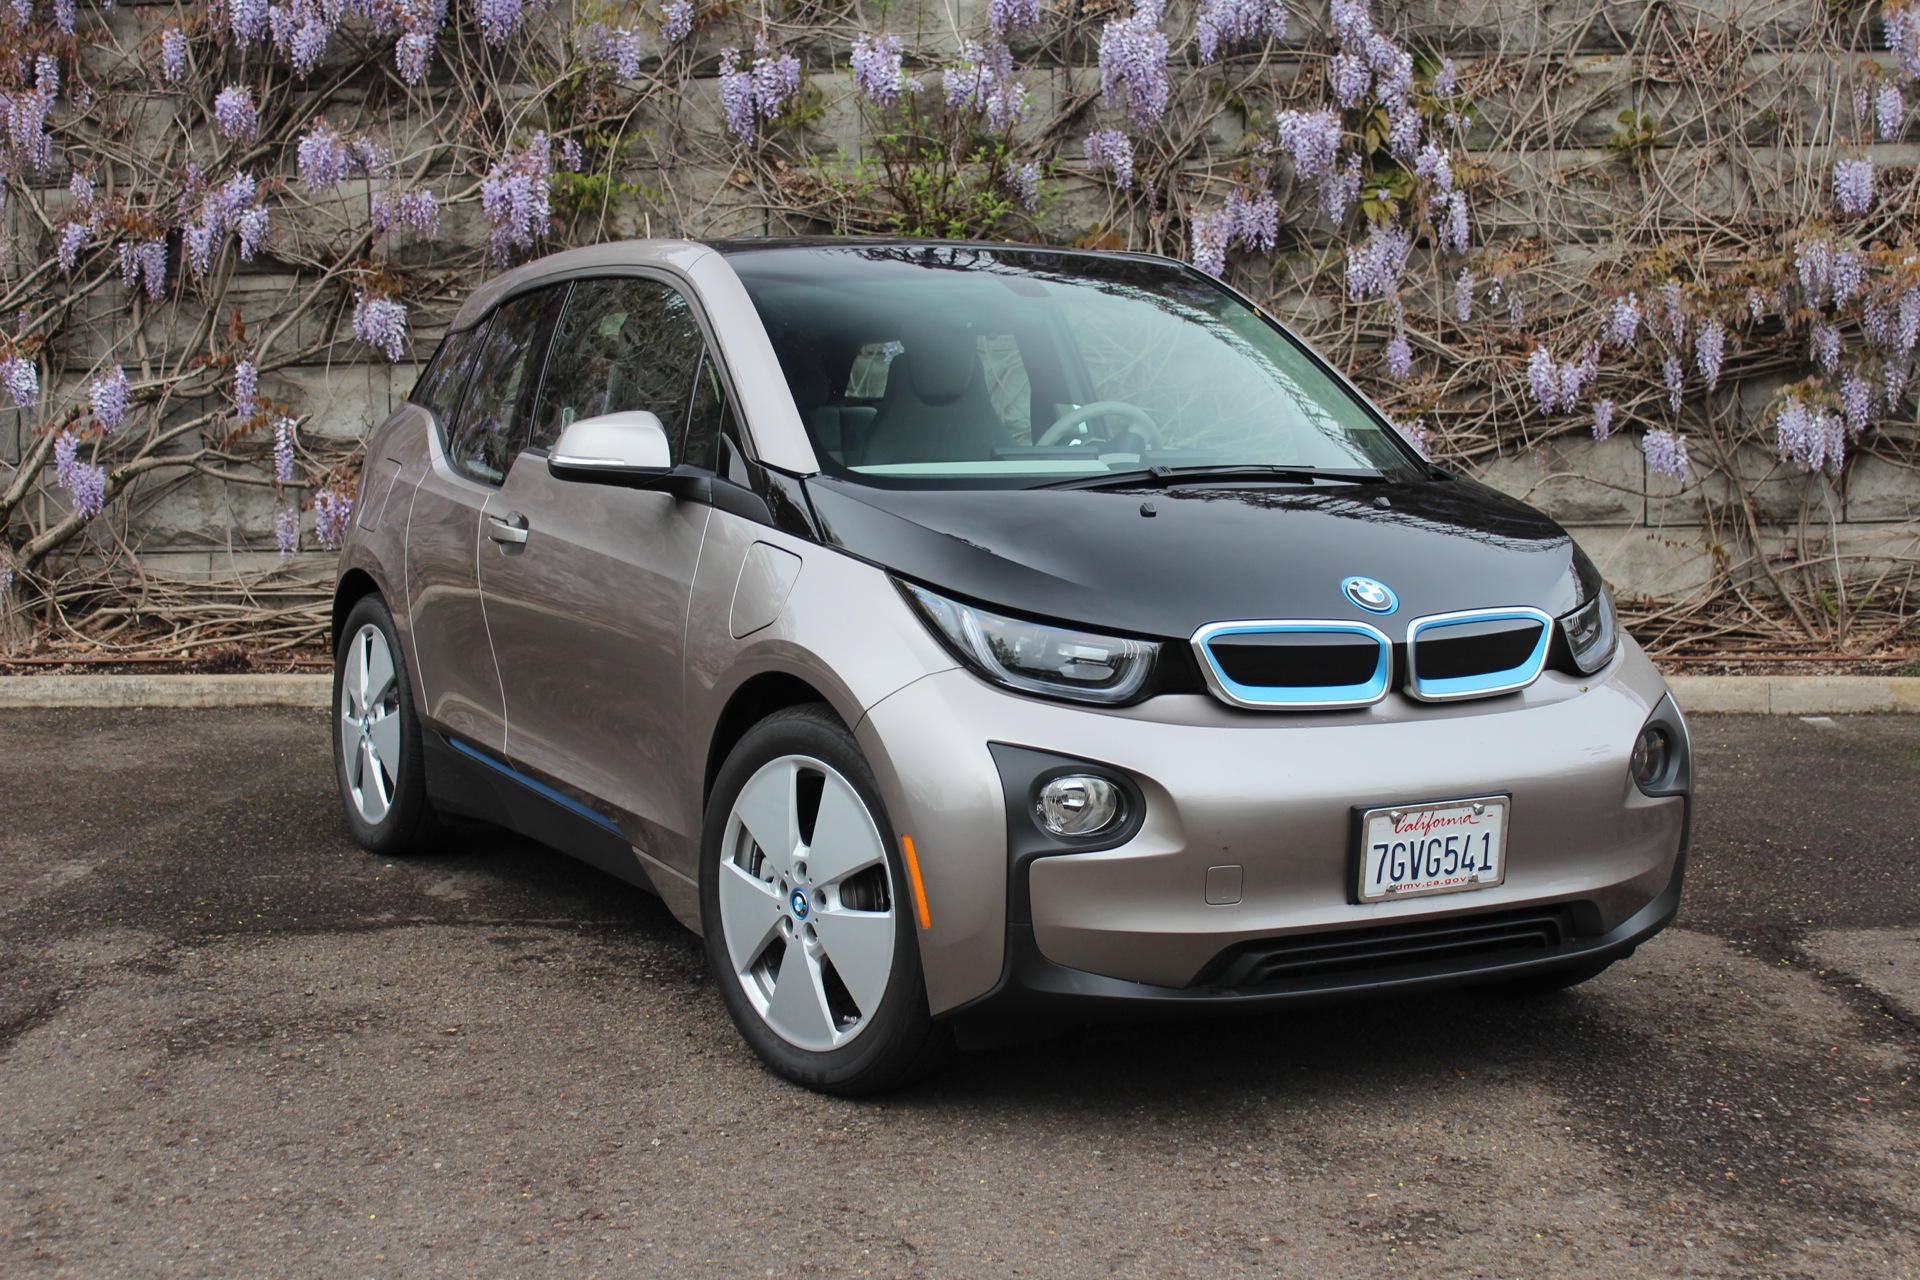 Alfa Romeo Dallas >> 2015 BMW i3 Review, Ratings, Specs, Prices, and Photos - The Car Connection